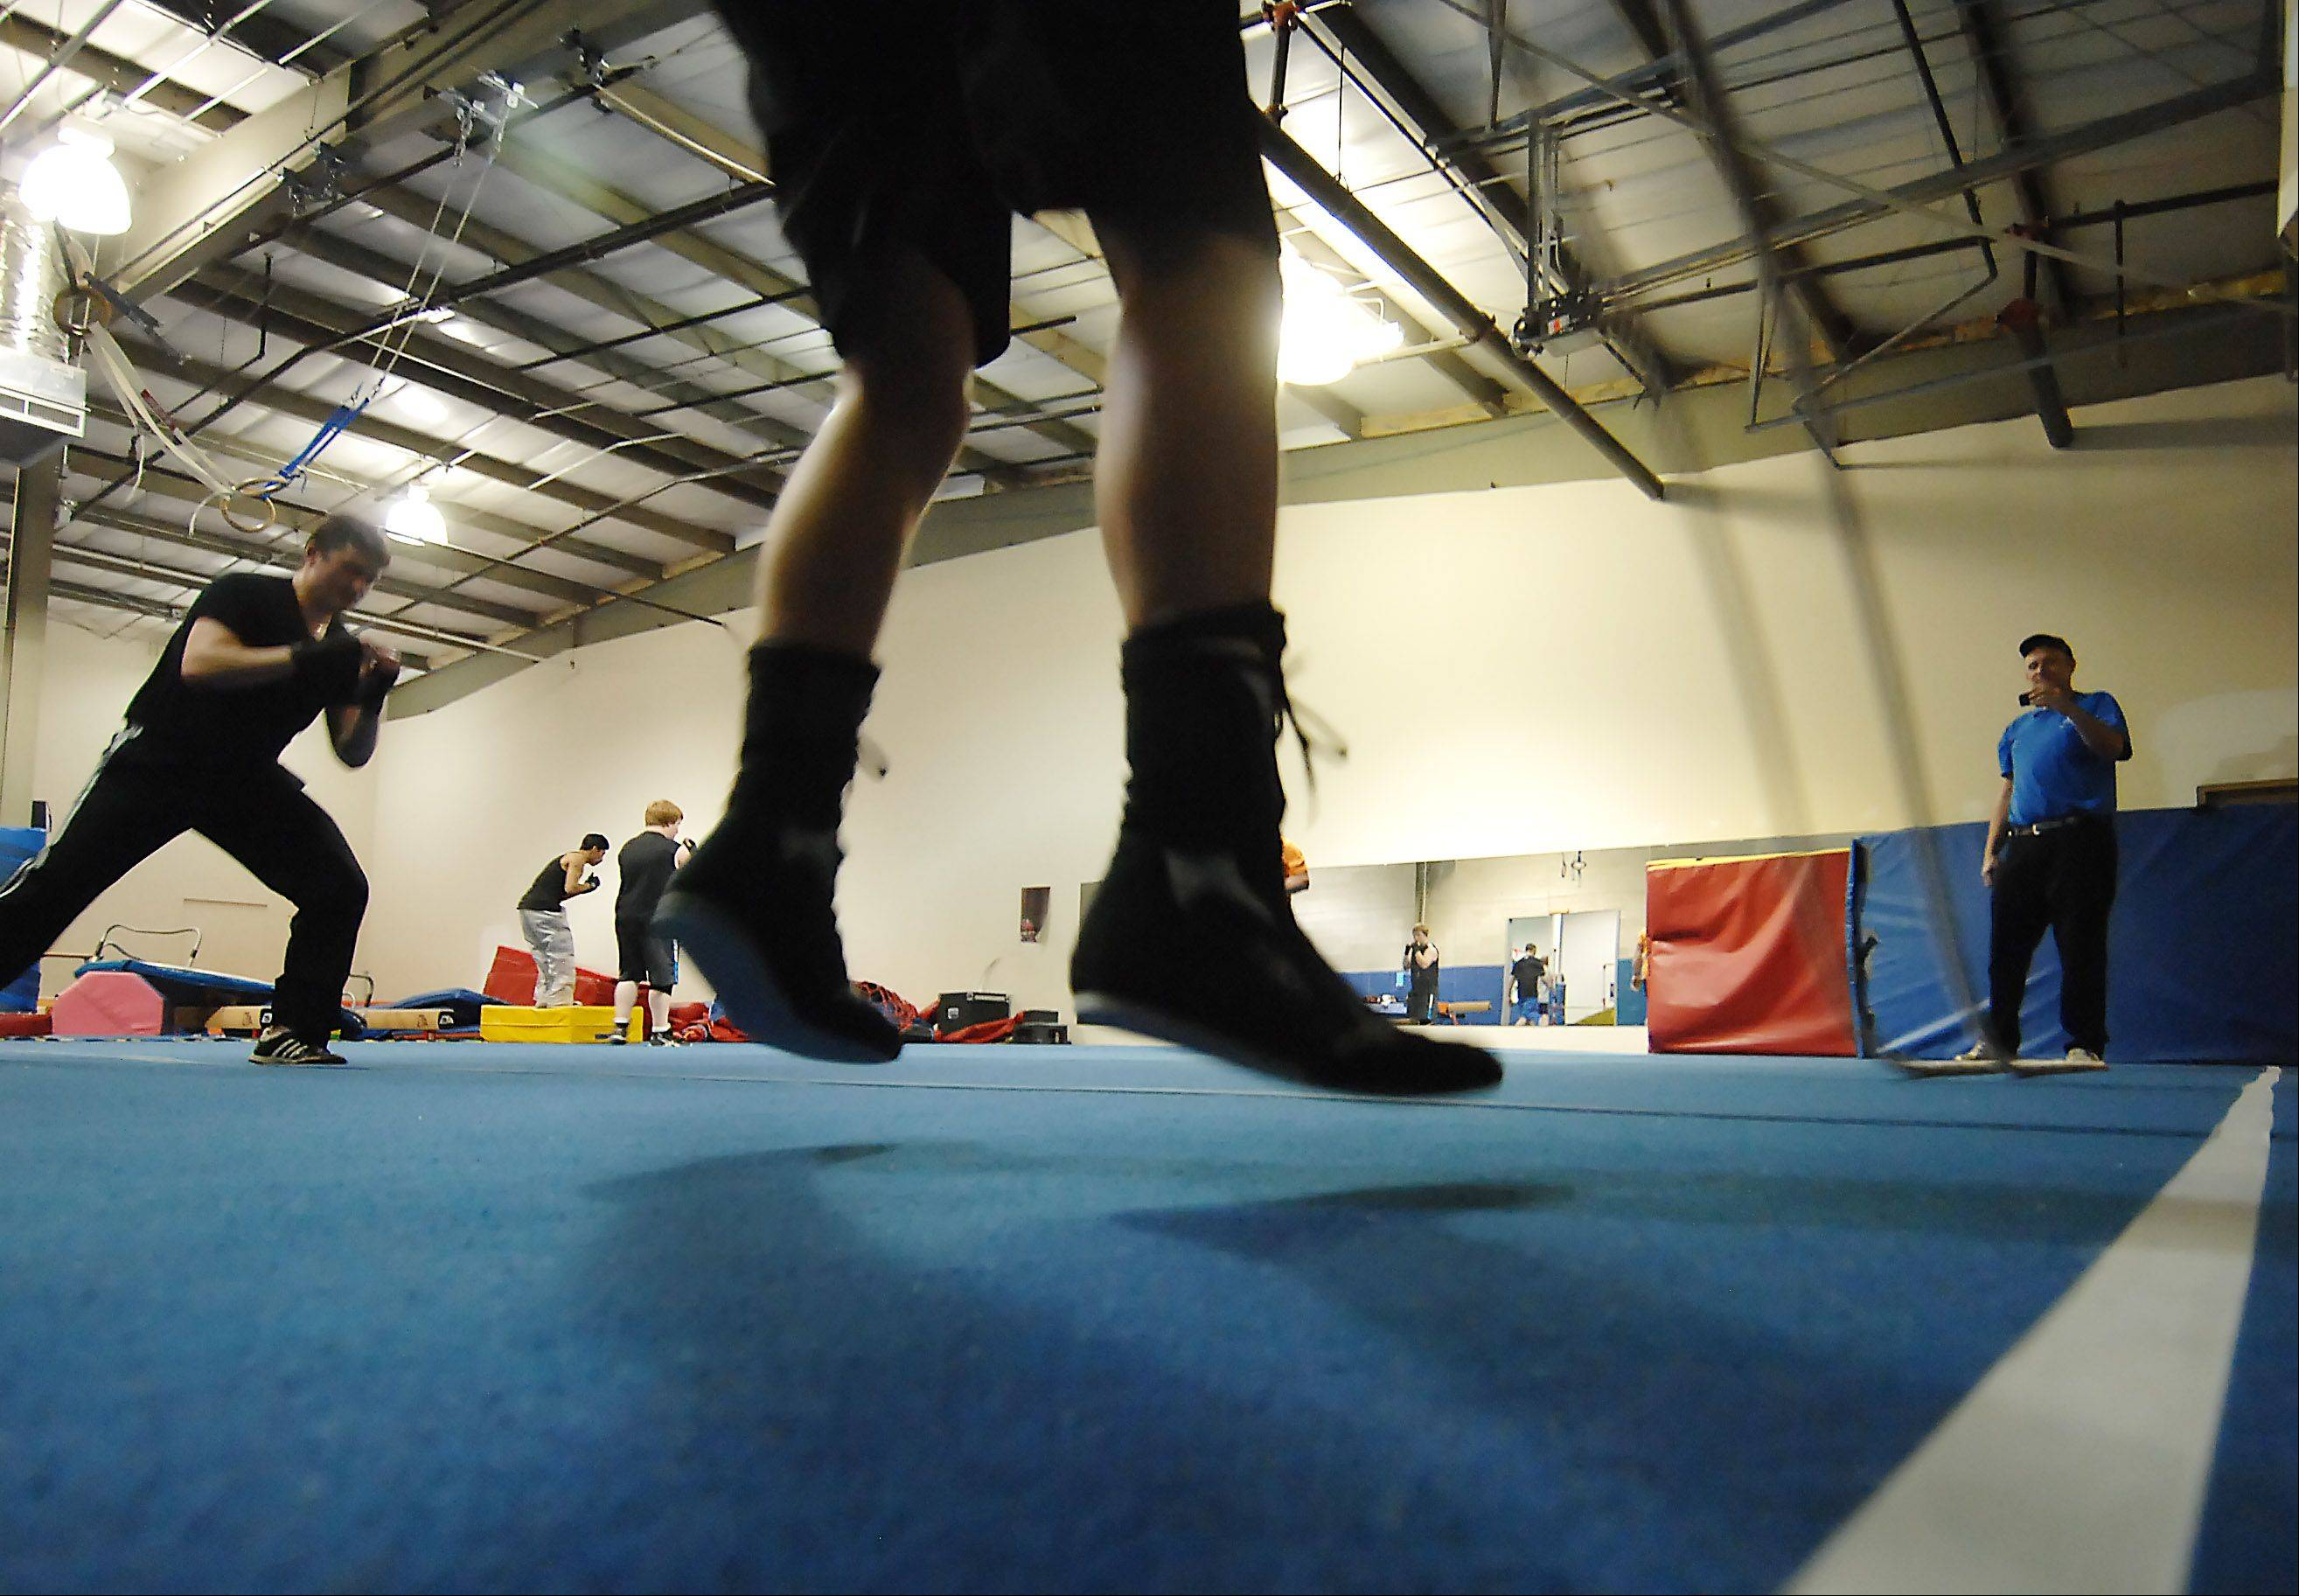 Jimmy Gustafson's boxing shoes lift off the floor as he works out with a heavy rope in Cary. The 16-year-old is boxing in one of several matches Saturday at an event promoted by Paul Jonas of Poundit Boxing Promotions.